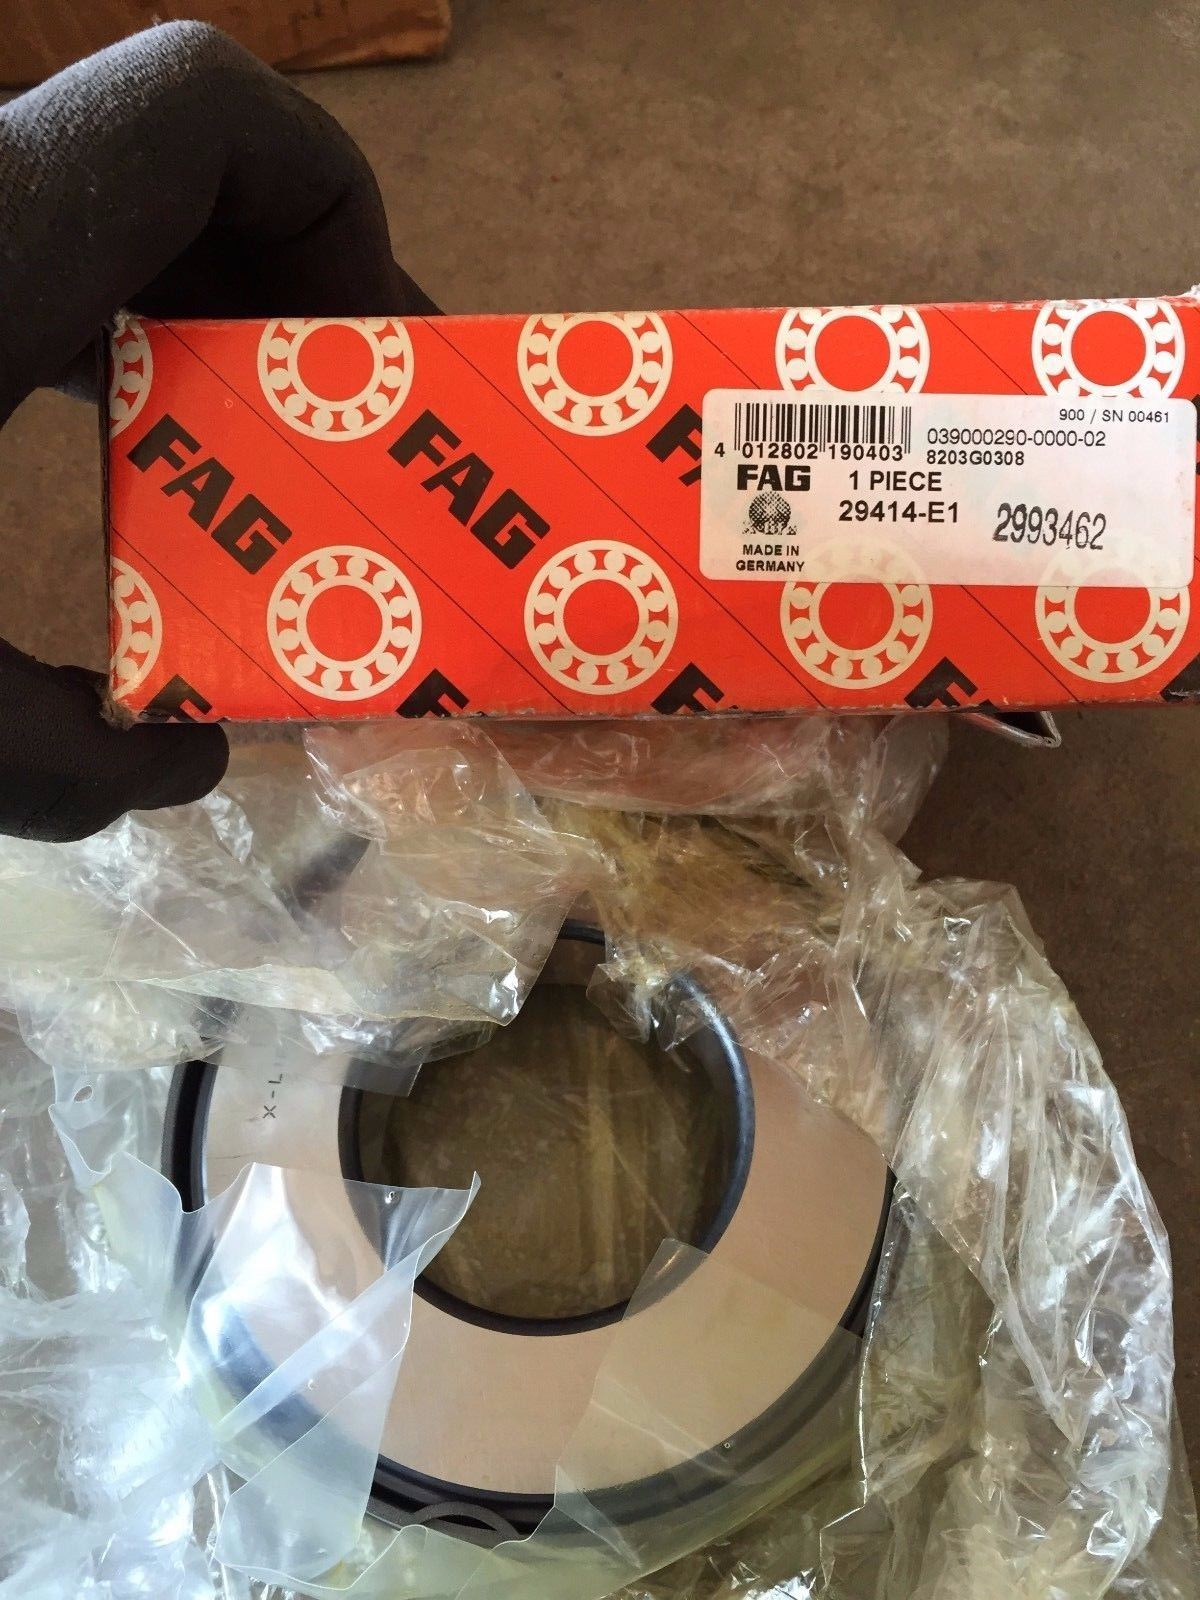 FAG 29414E1 Spherical Thrust Roller Bearing